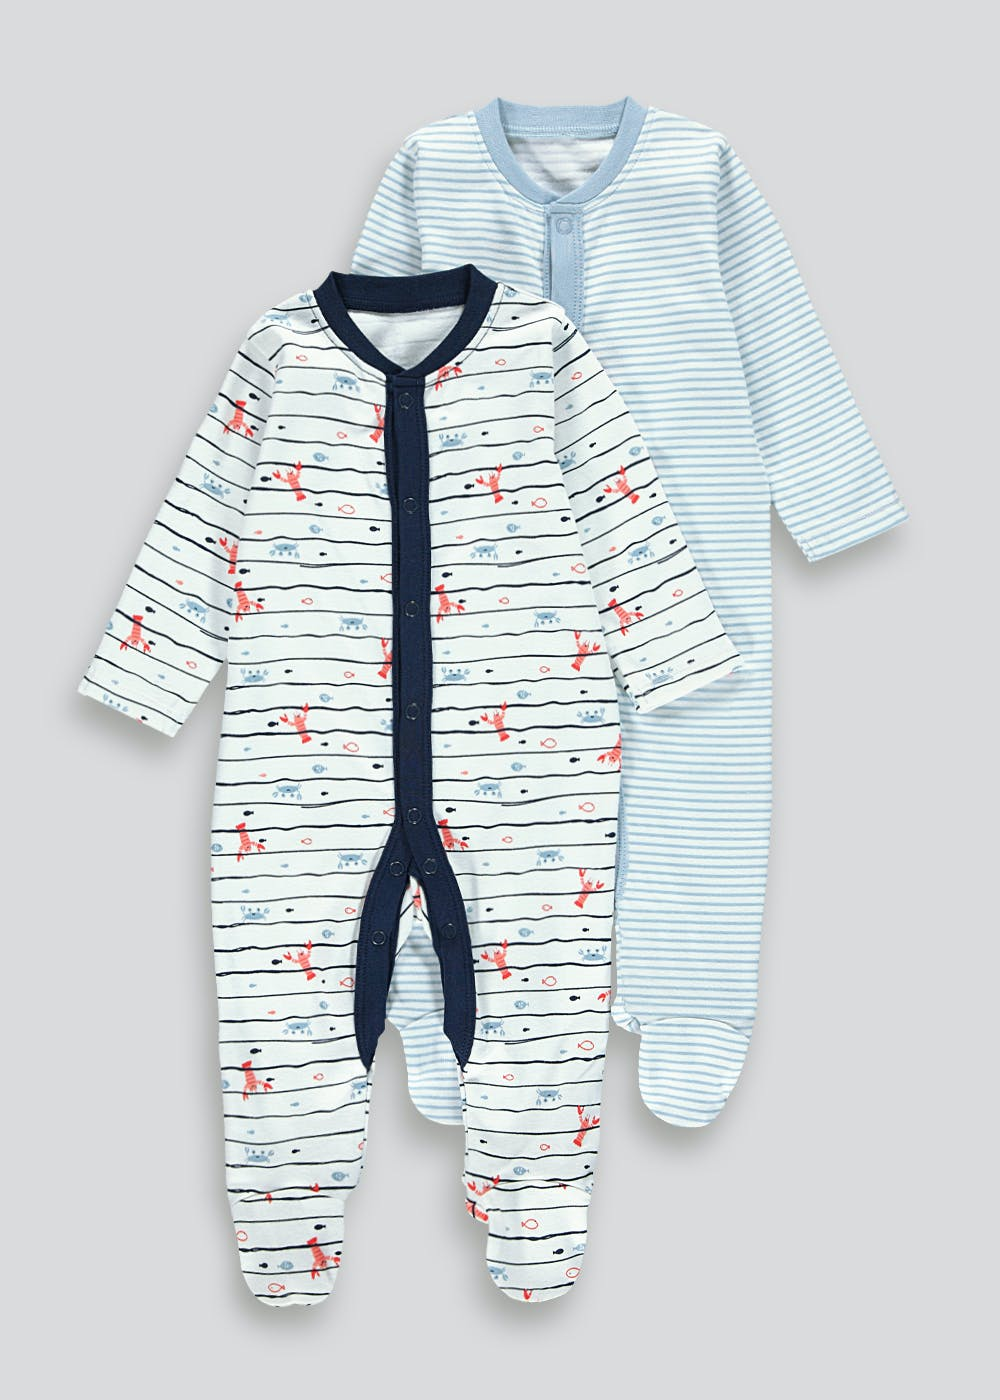 Boys 2 Pack Baby Grows (Tiny Baby-18mths) – Blue